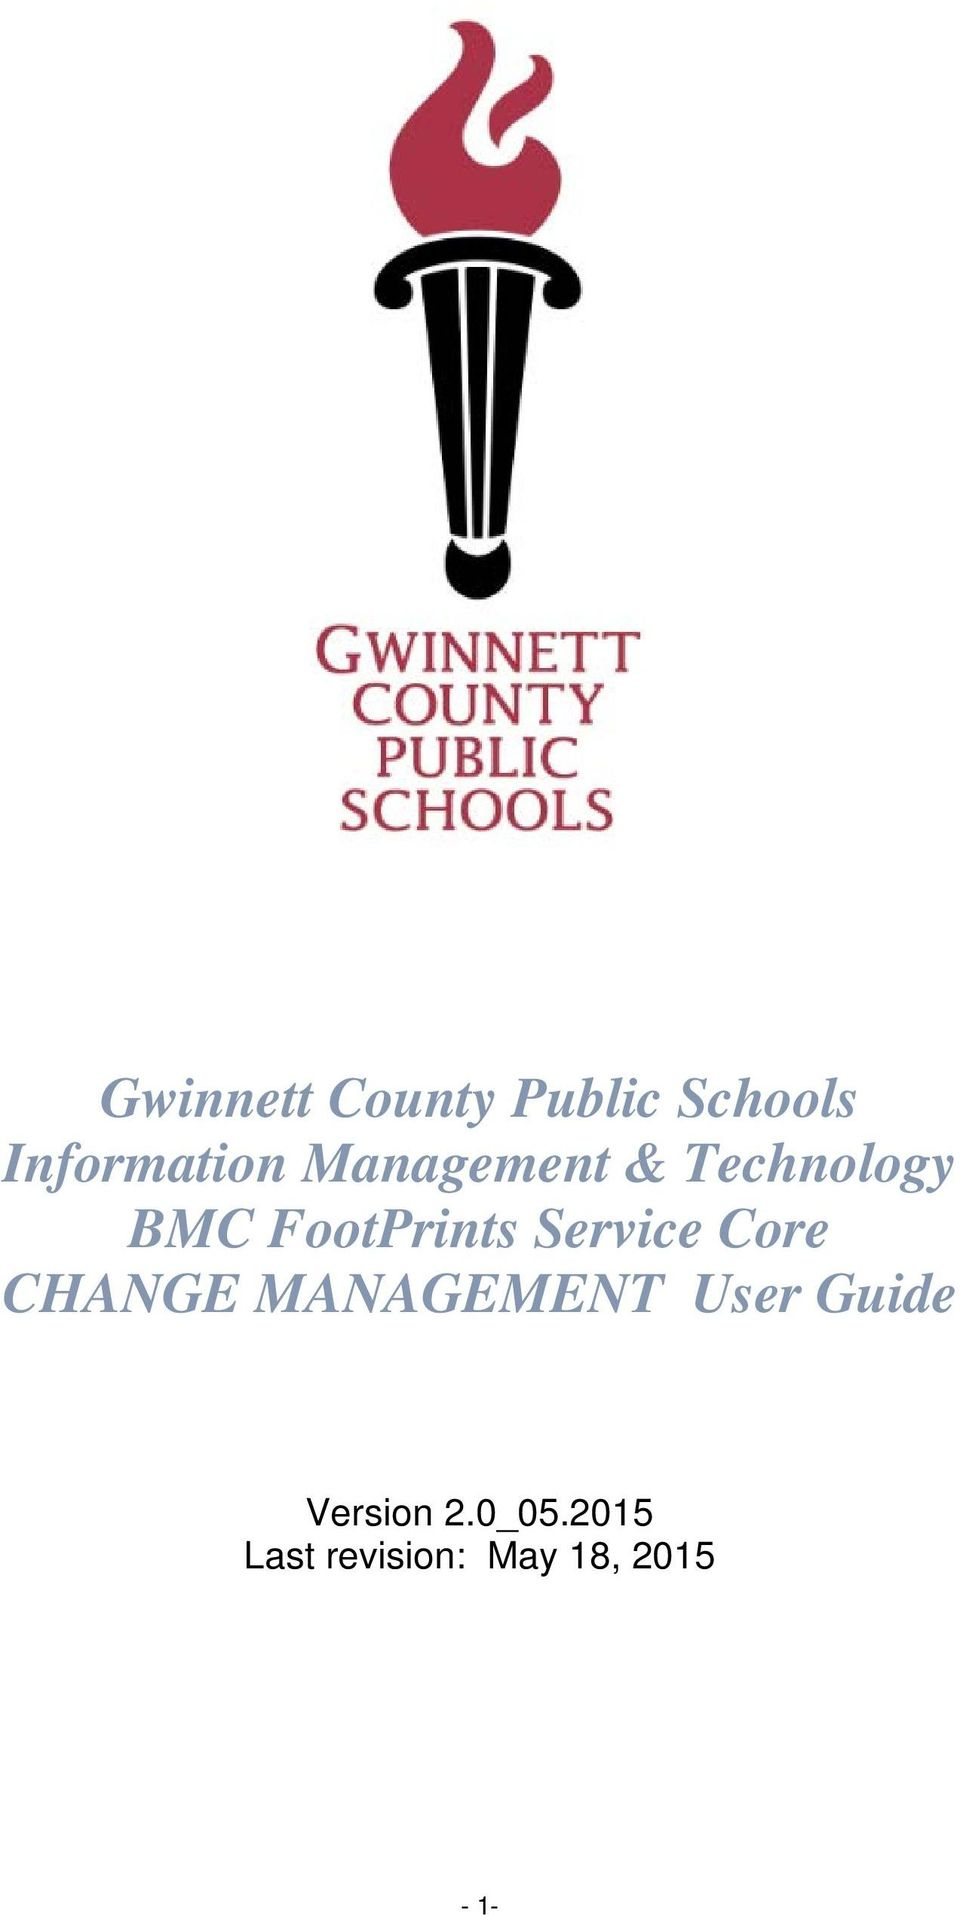 Gwinnett County Public Schools Information Management